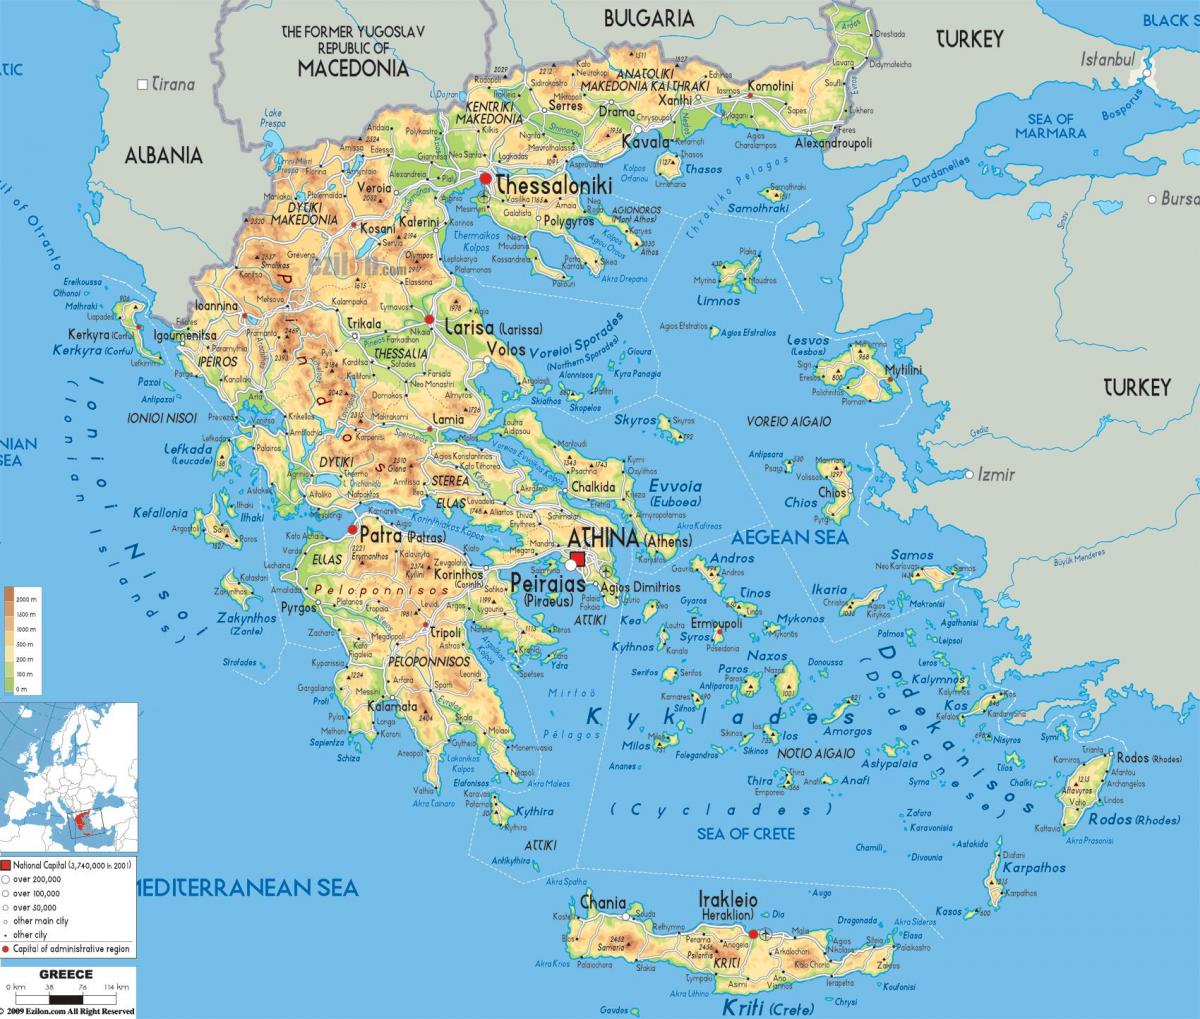 geografiske kart over Hellas